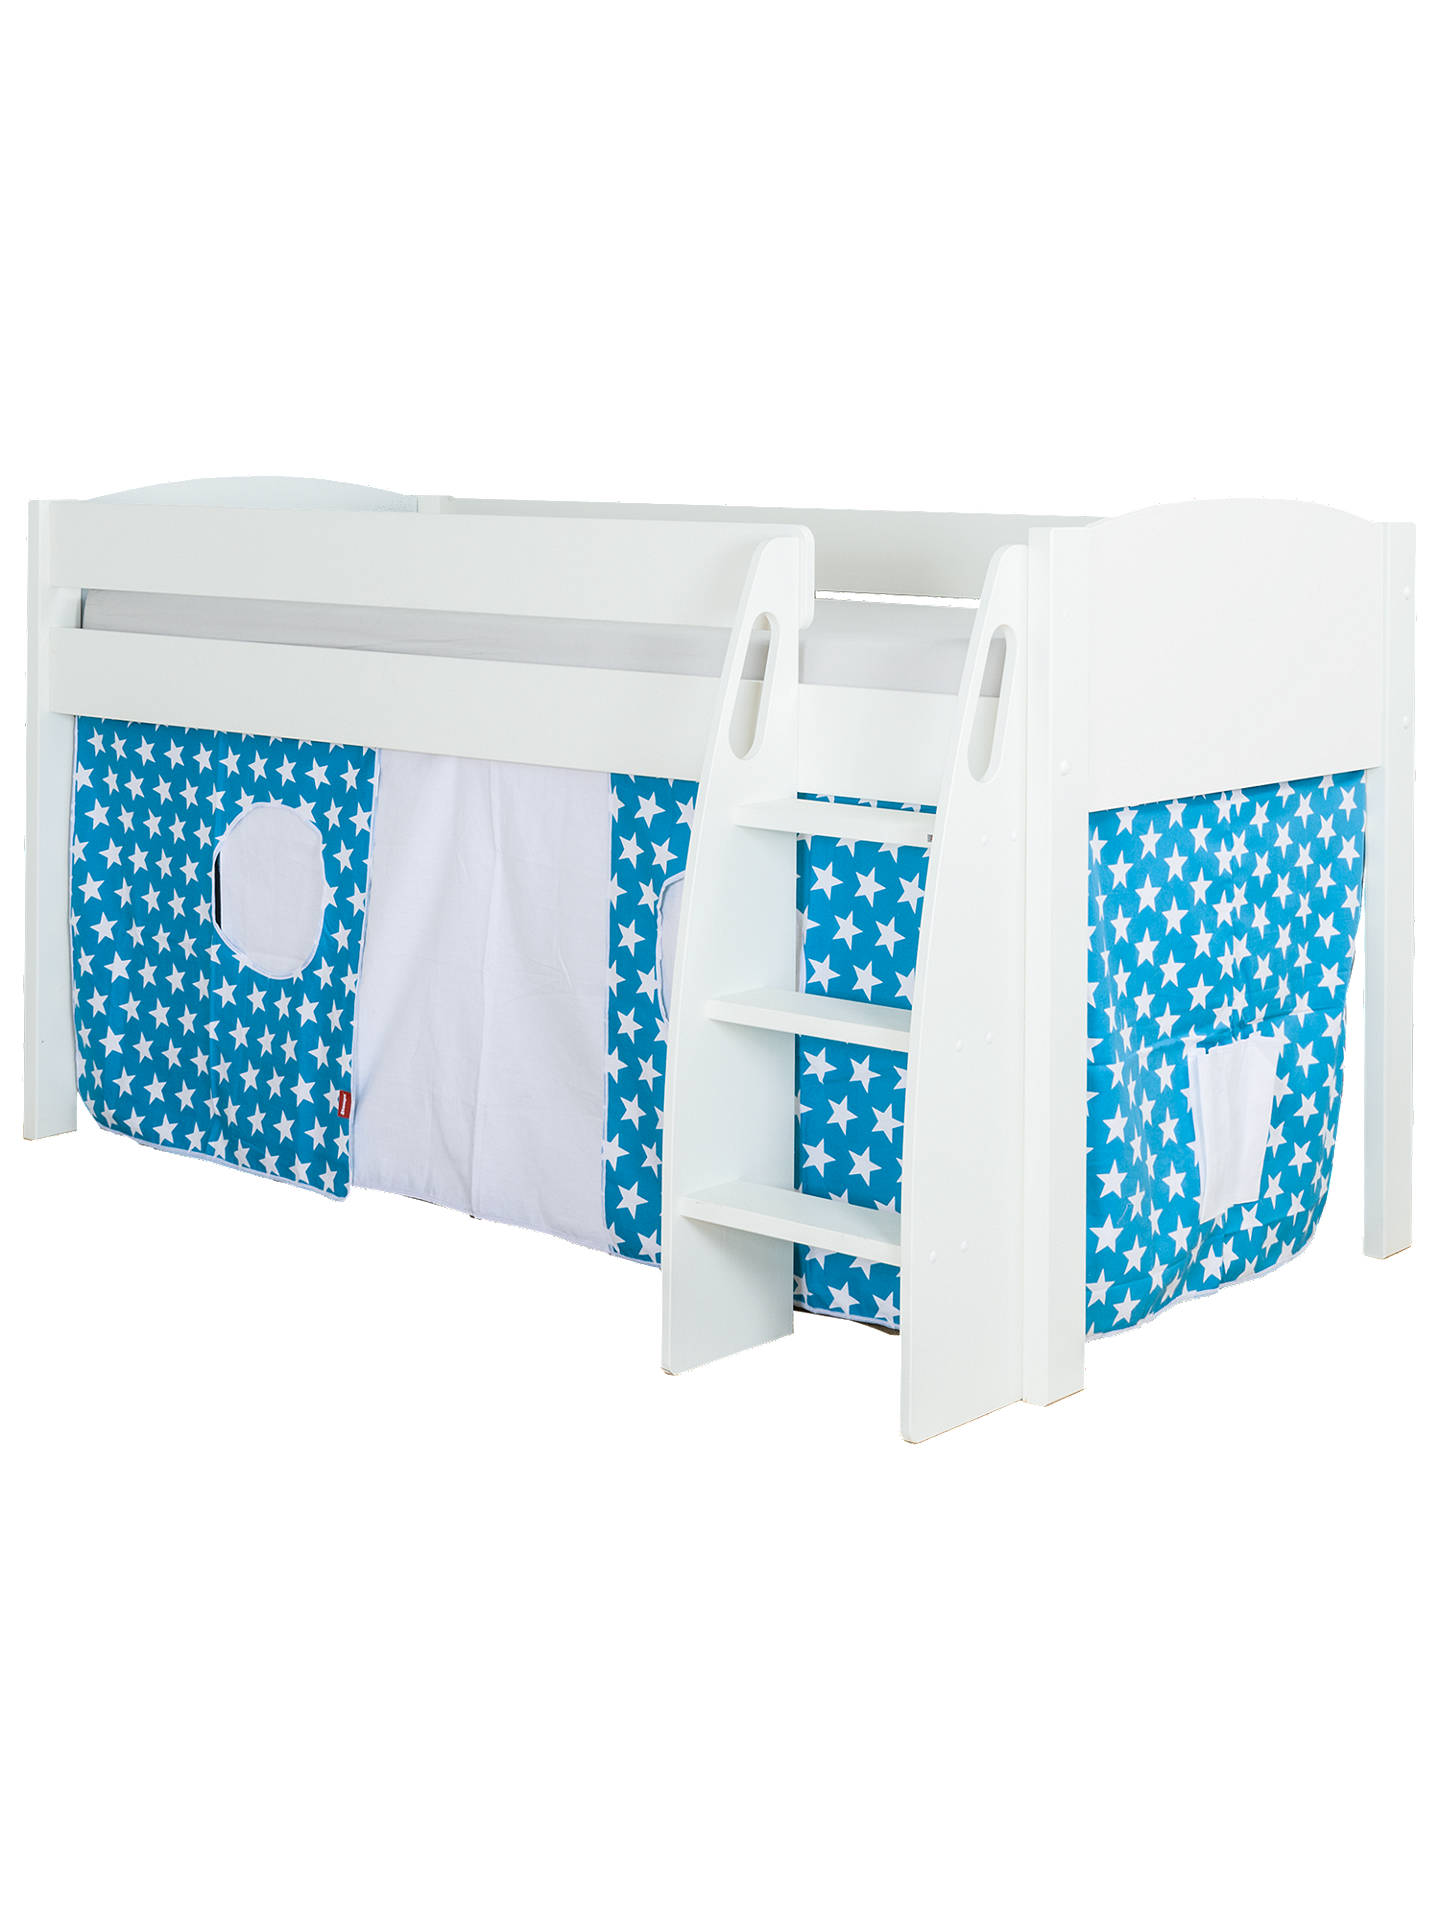 BuyStompa Uno S Plus Mid-Sleeper Bed with White Headboard and Star Print Tent, Aqua Online at johnlewis.com